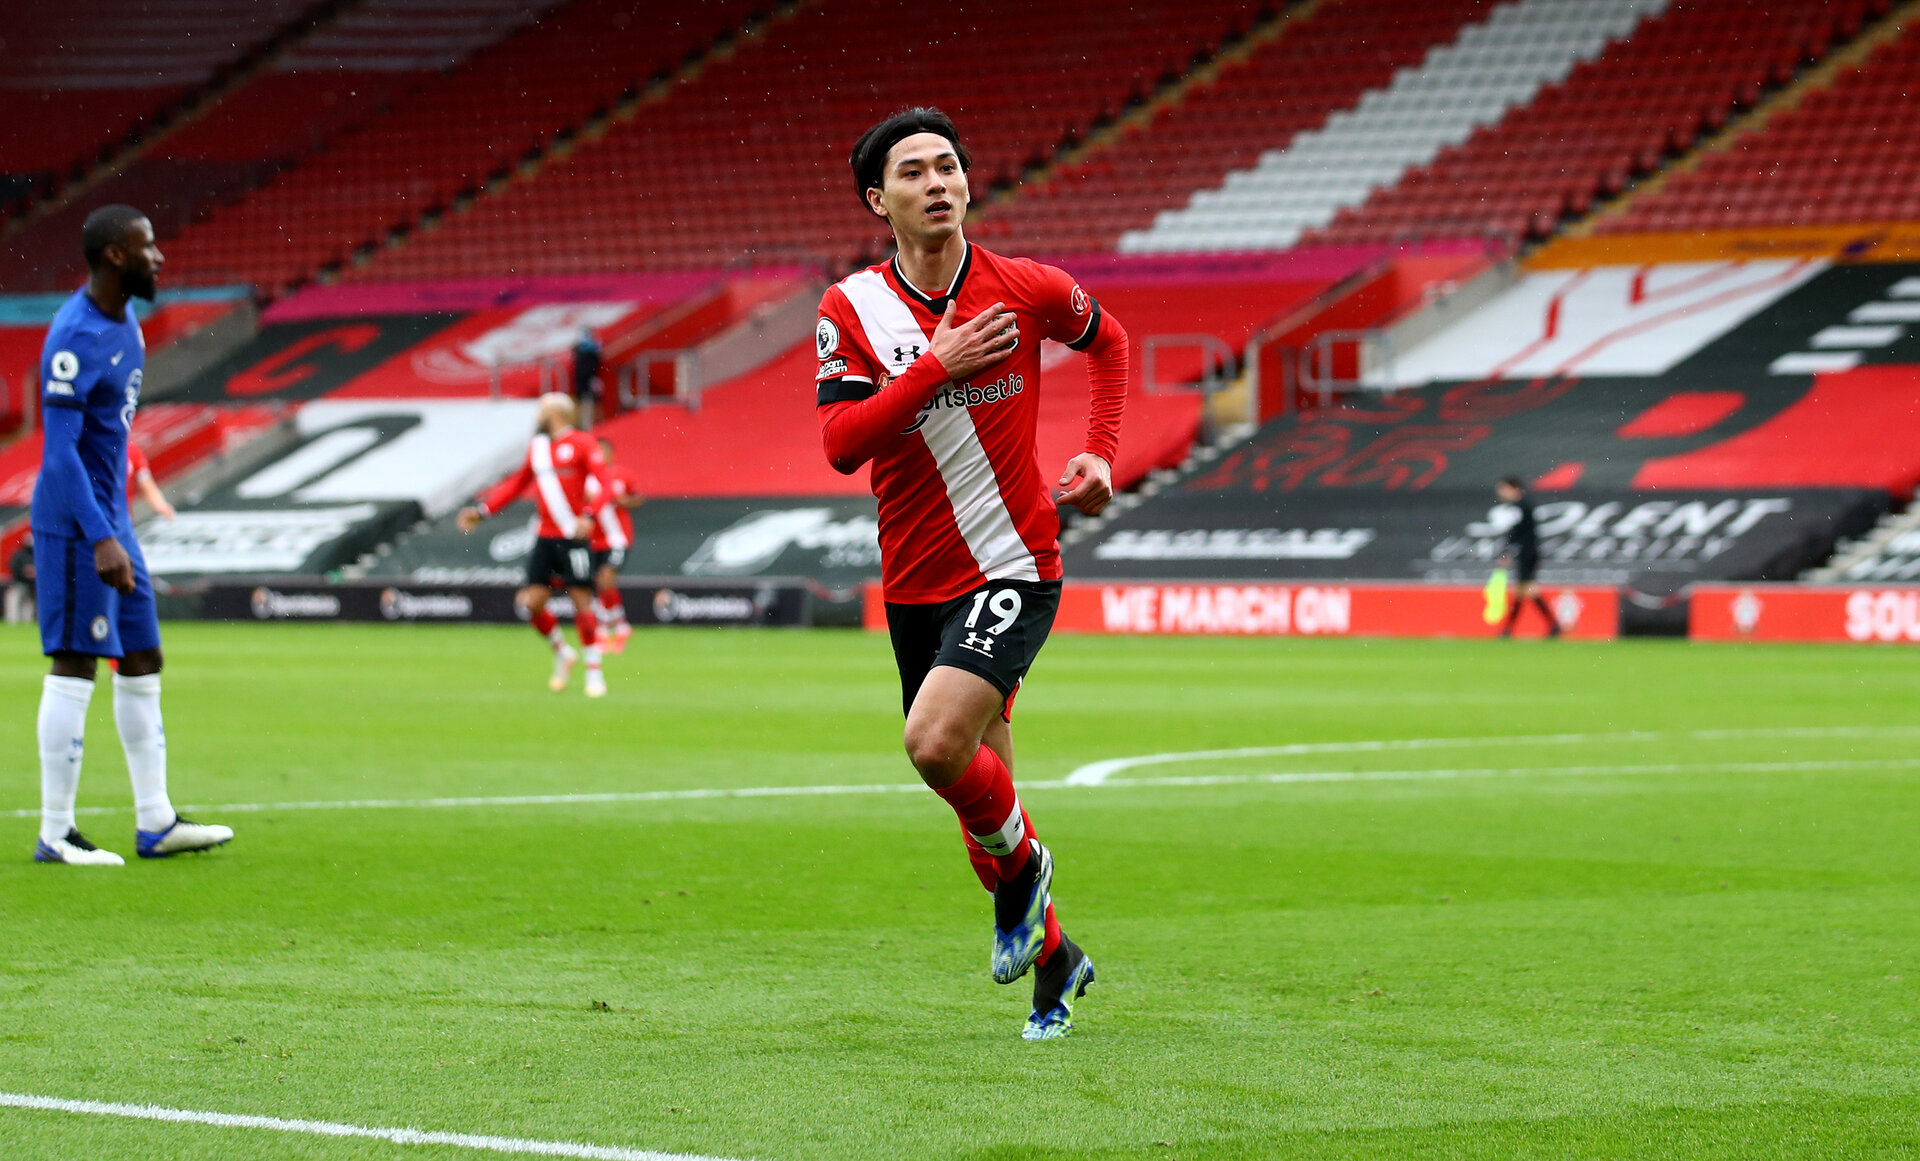 SOUTHAMPTON, ENGLAND - FEBRUARY 20: Takumi Minamino of celebrates after scoring the opening goal during the Premier League match between Southampton and Chelsea at St Mary's Stadium on February 20, 2021 in Southampton, England. Sporting stadiums around the UK remain under strict restrictions due to the Coronavirus Pandemic as Government social distancing laws prohibit fans inside venues resulting in games being played behind closed doors. (Photo by Matt Watson/Southampton FC via Getty Images)